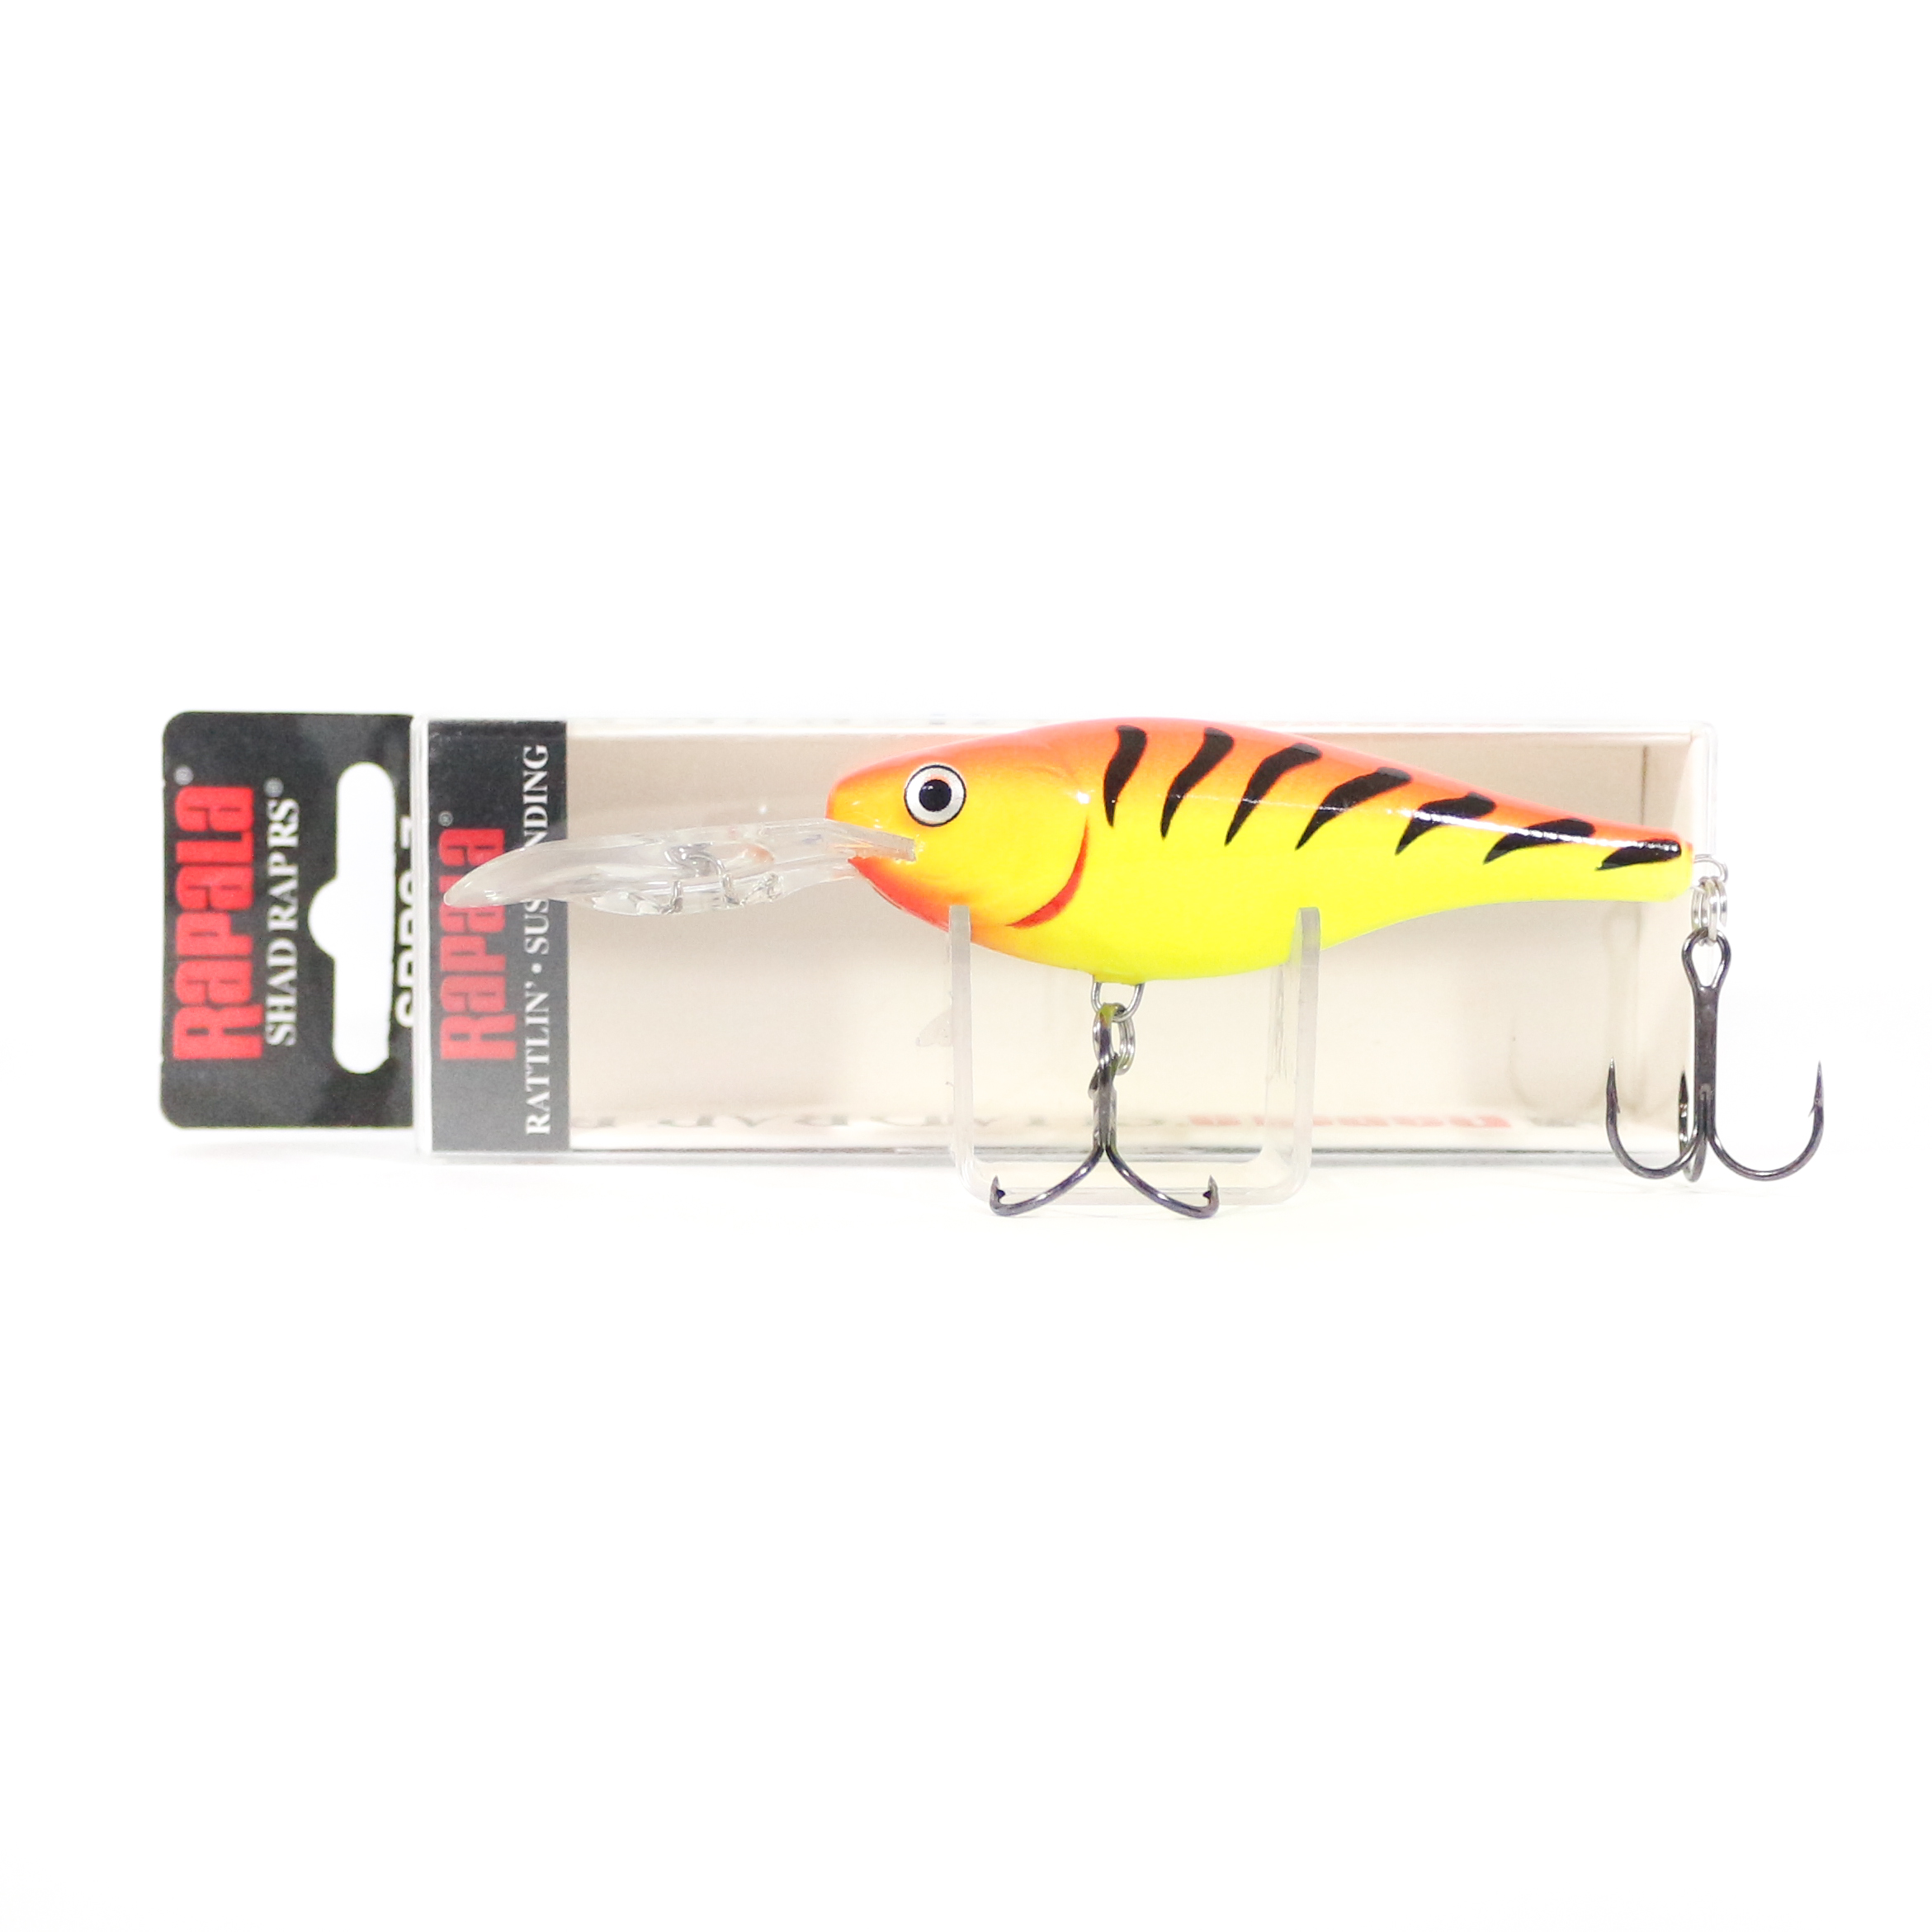 Rapala Jointed Suspending 2-inch FireTiger Shad Rap Fishing Lure #JSR05 FT